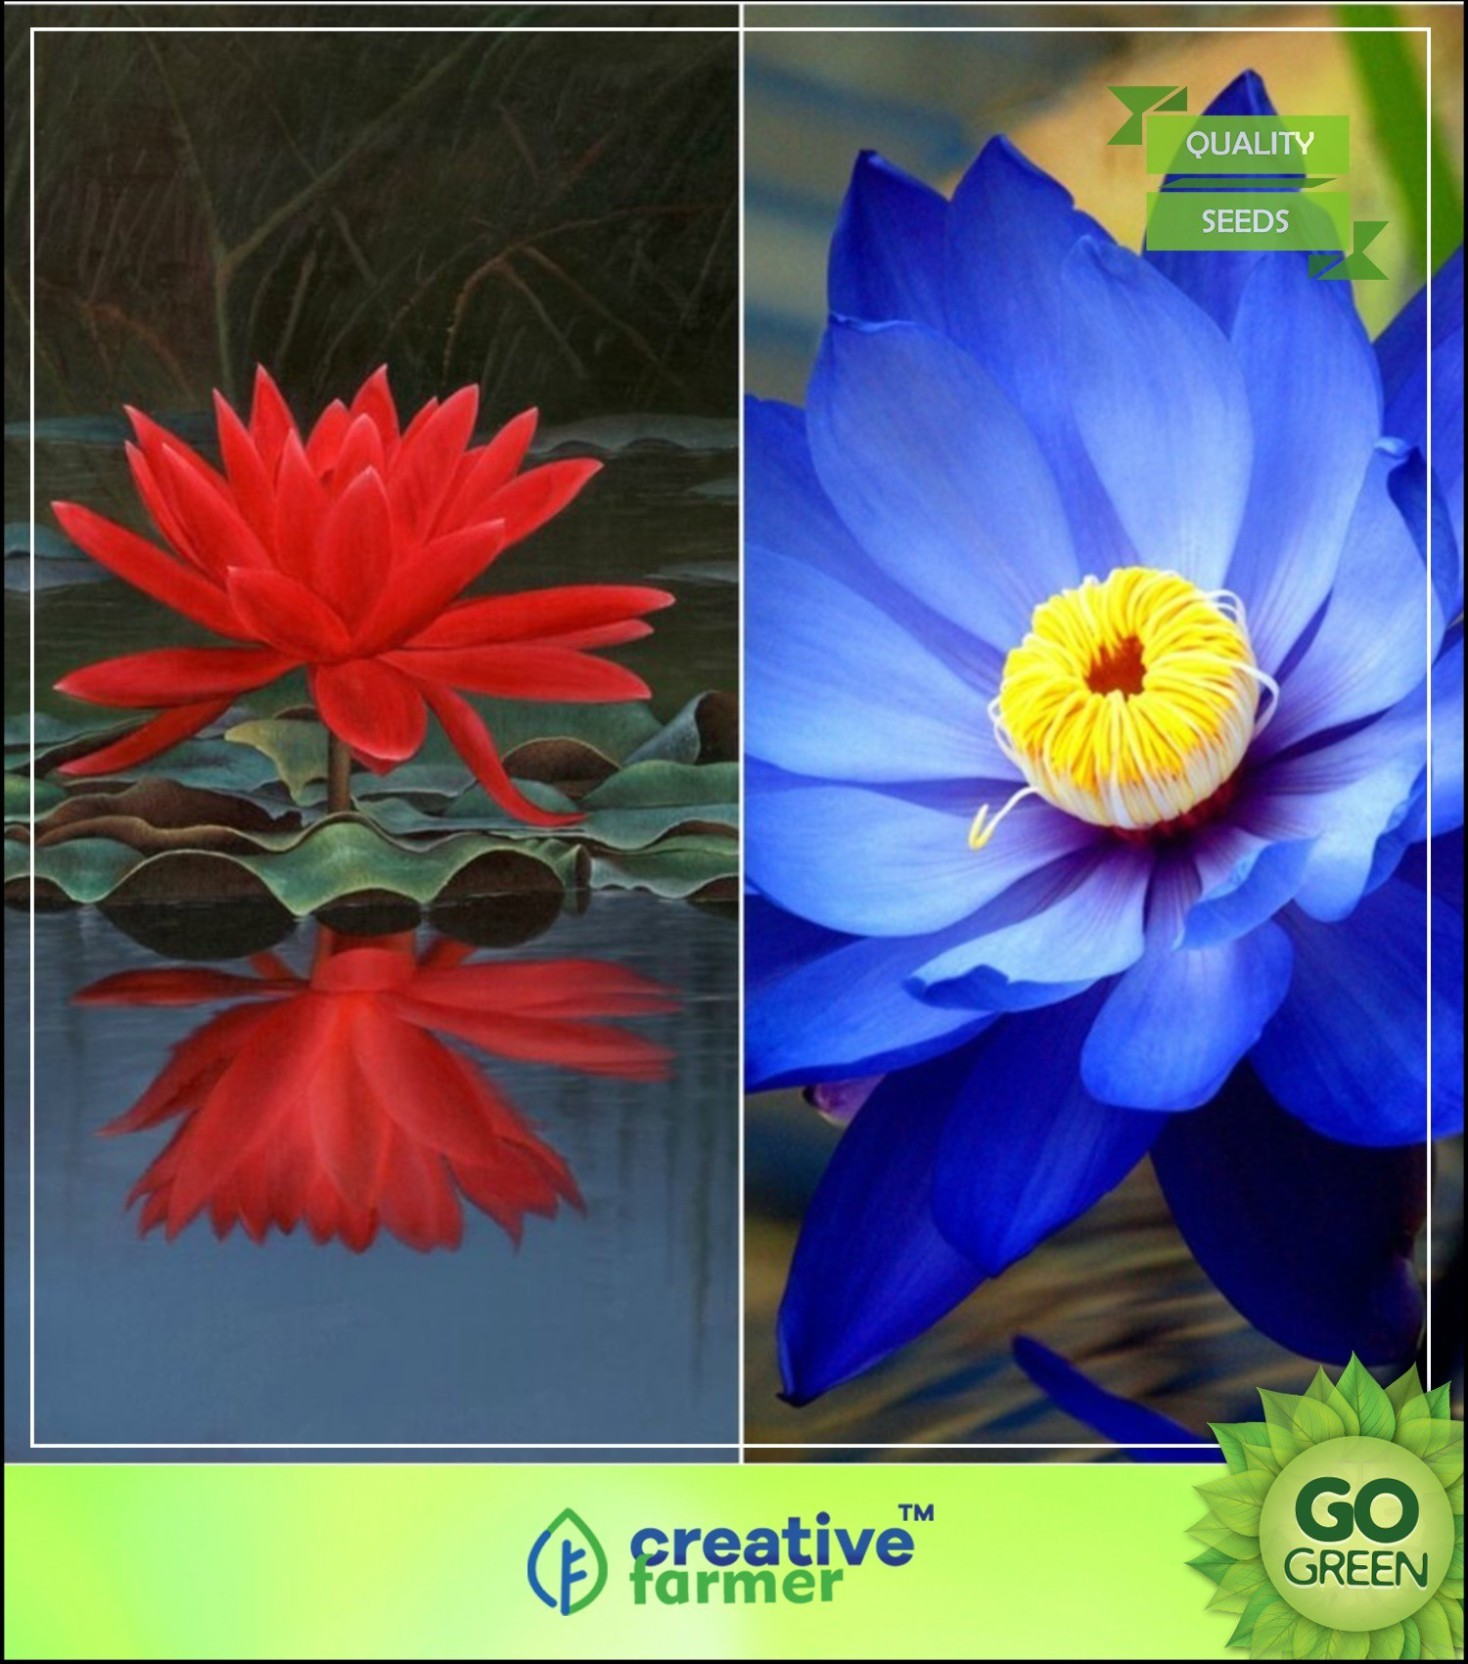 Creative Farmer Lotus Flower Seeds Red Blue Colors Seeds For